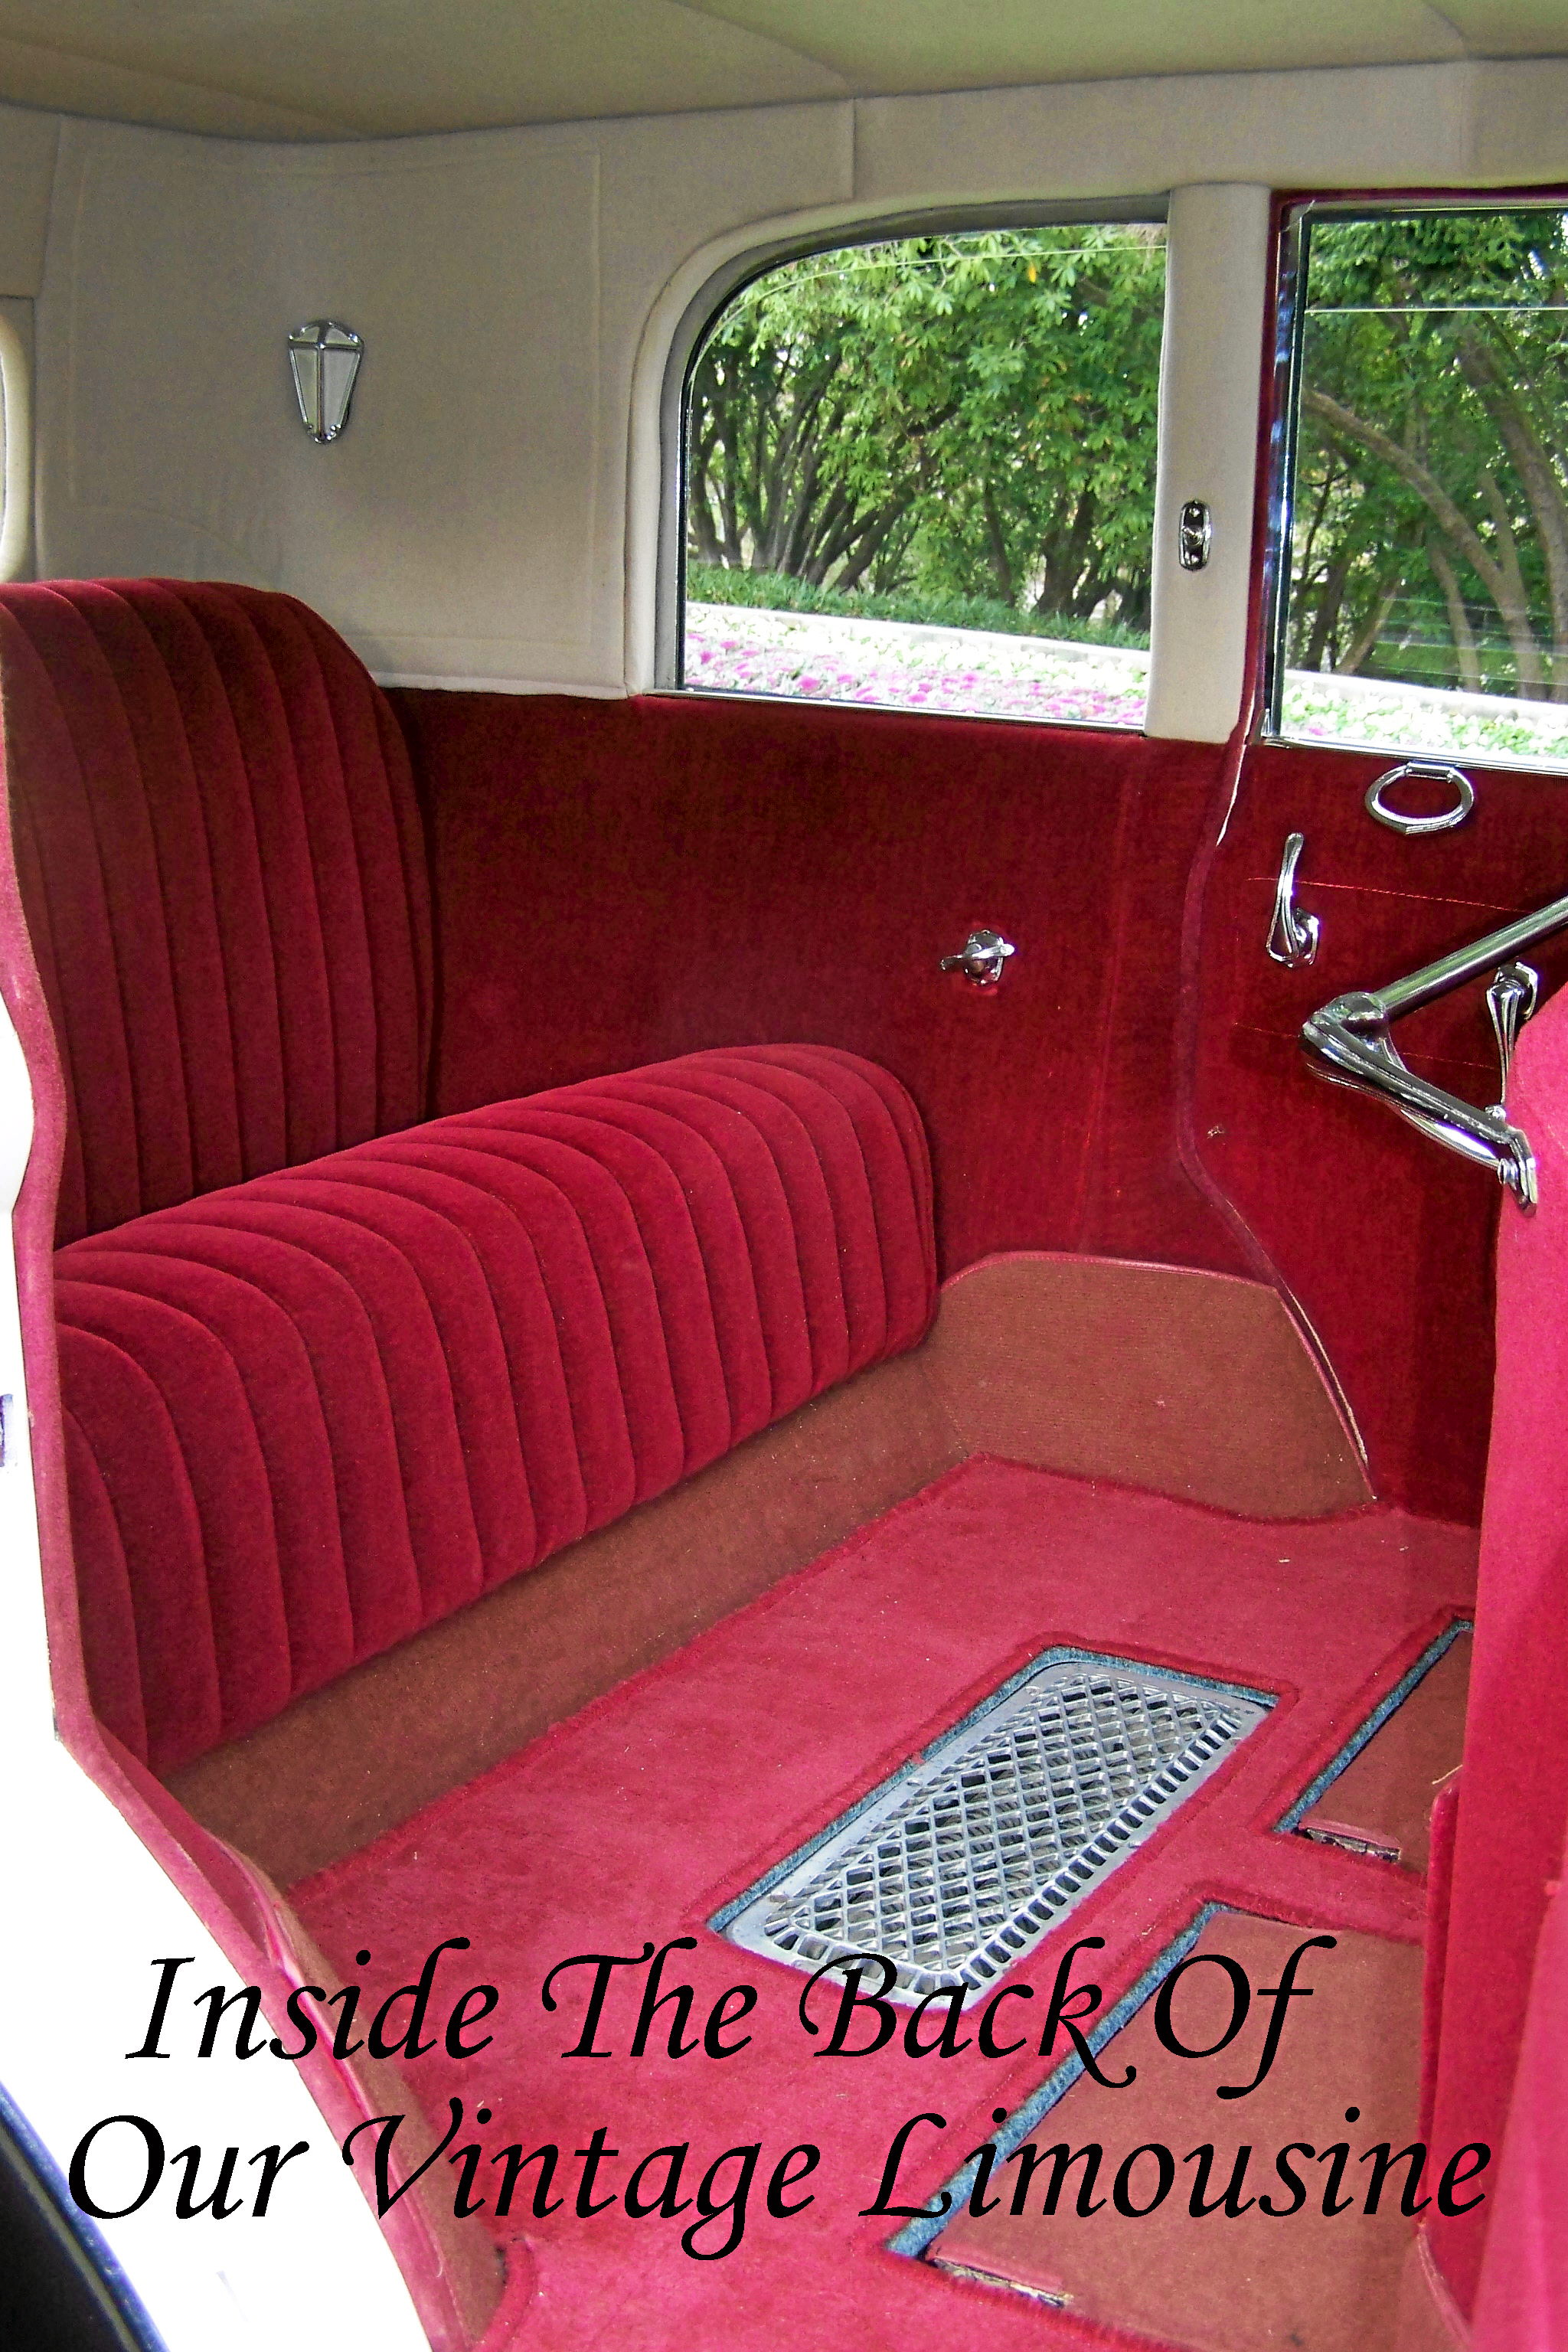 Back of the Limousine